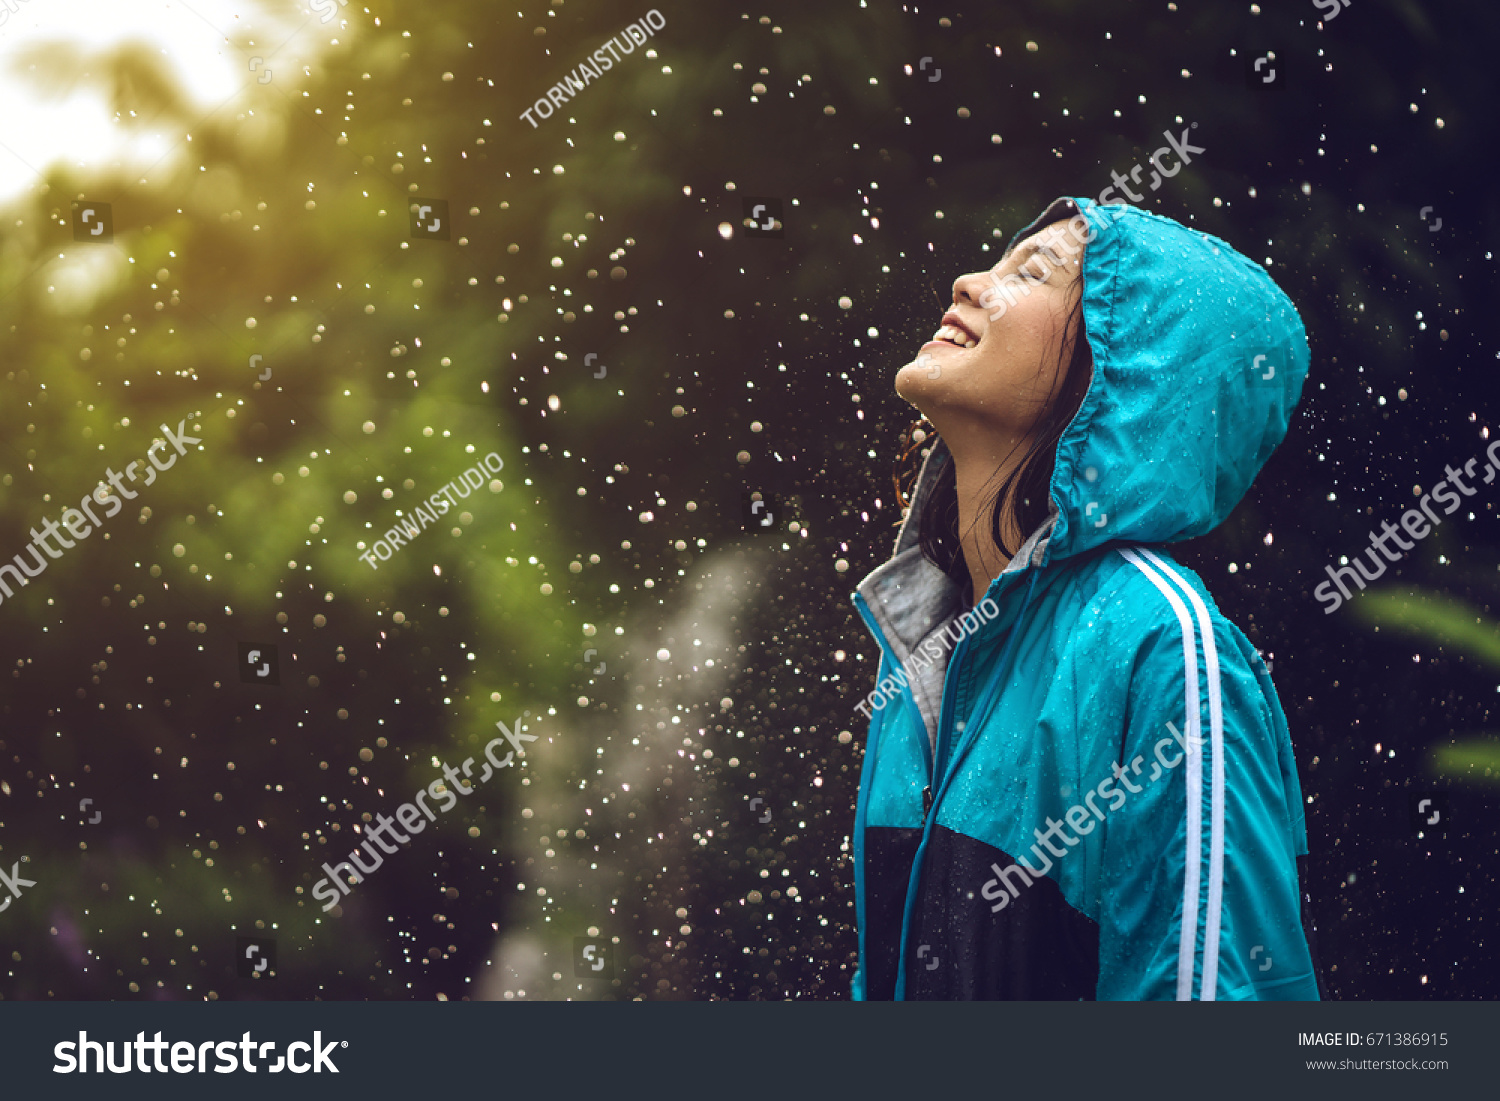 http://public.pcidp.org/sites/default/files/revslider/image/stock-photo-asian-woman-wearing-a-raincoat-outdoors-she-is-happy-671386915.jpg